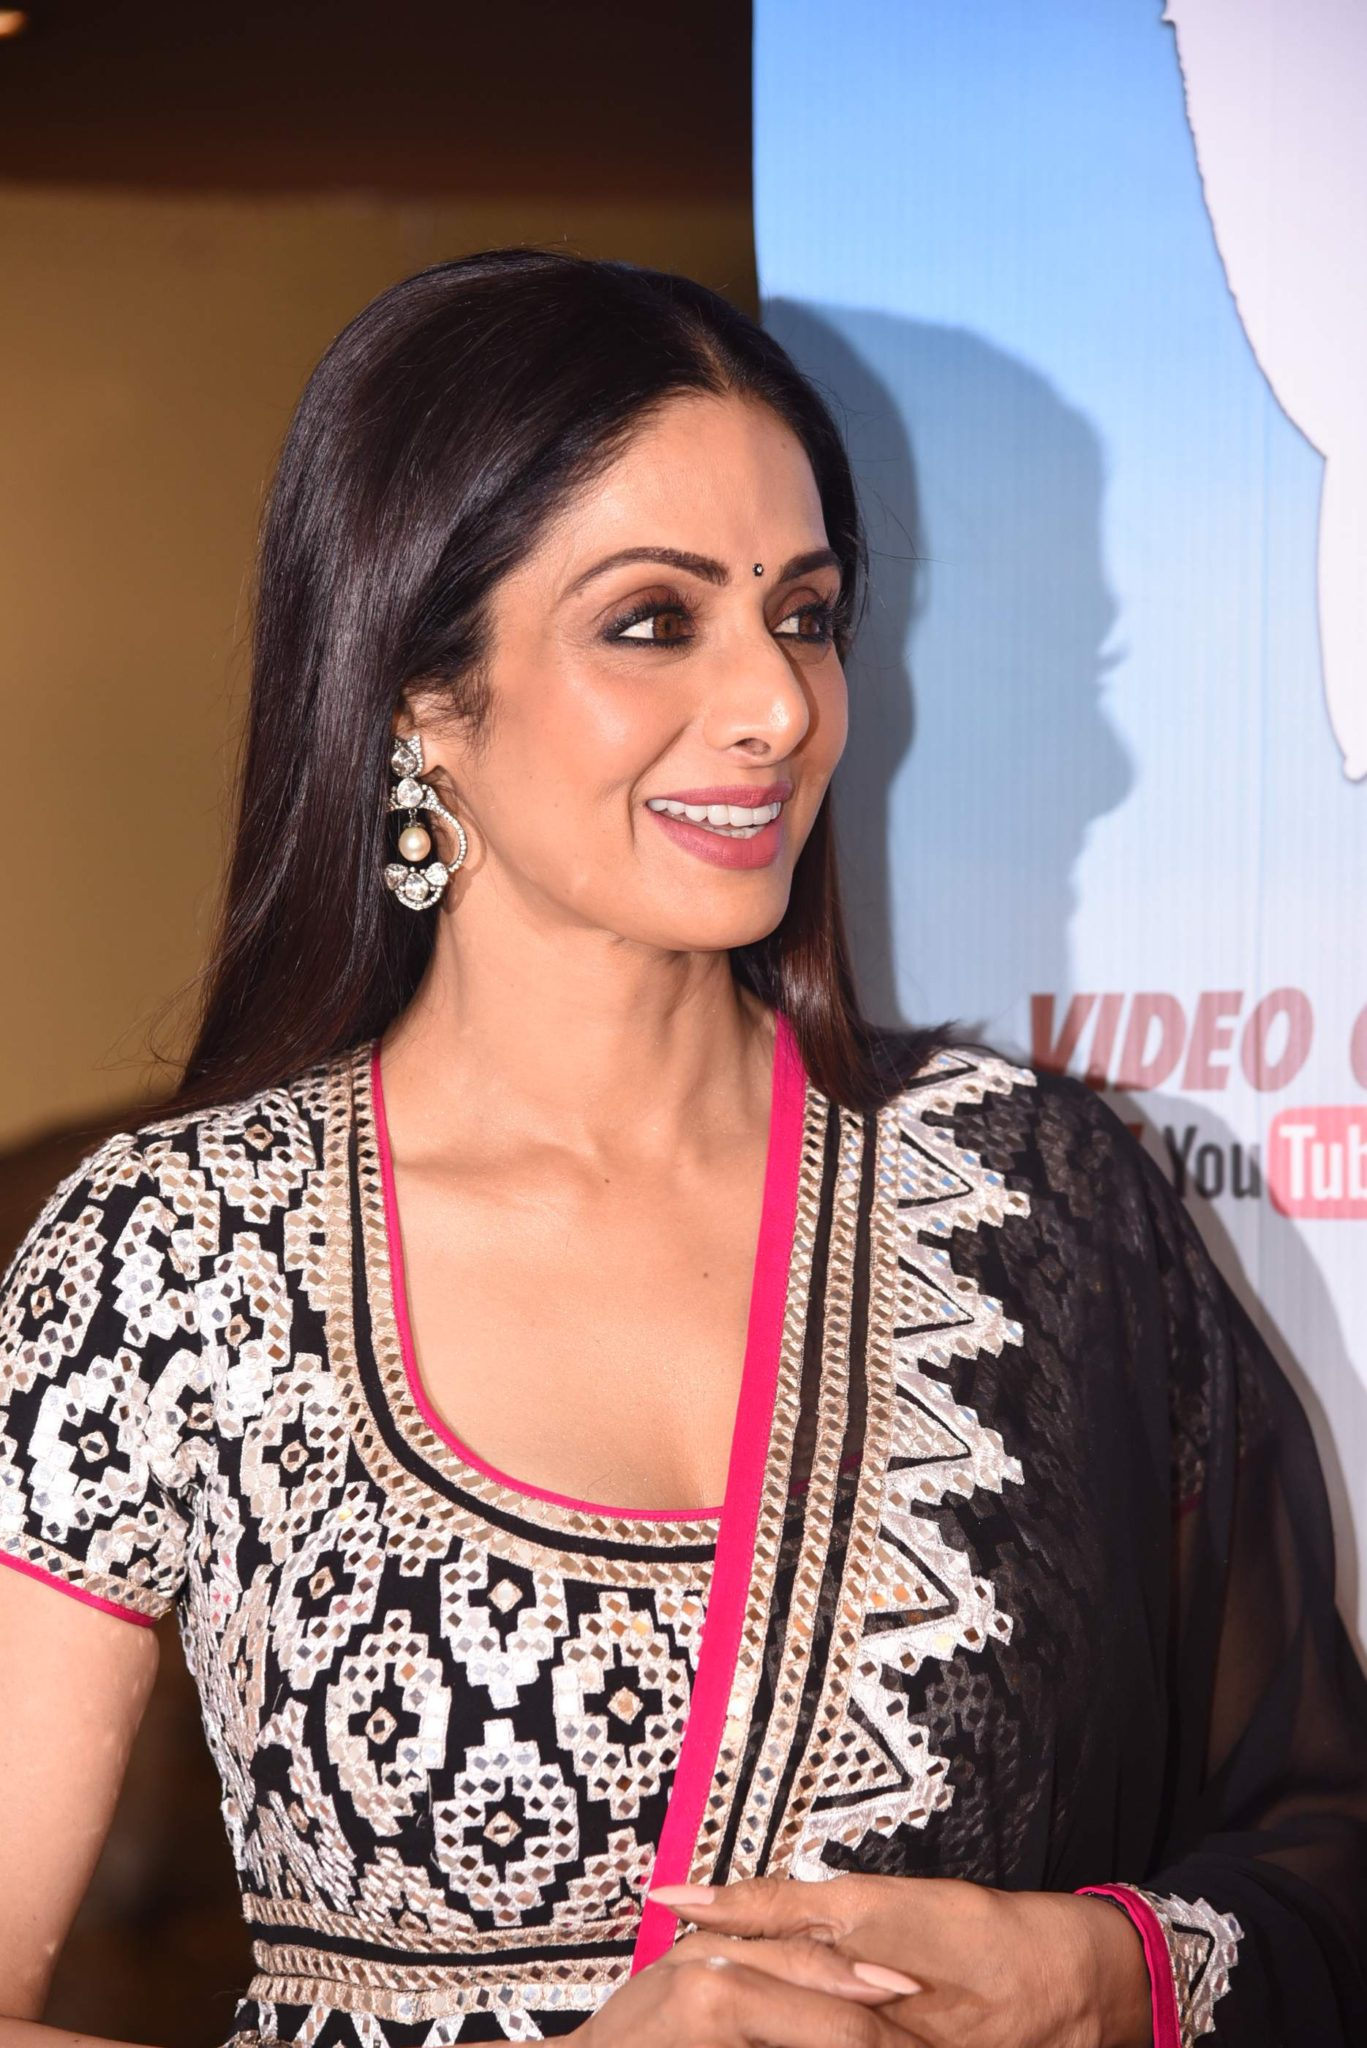 sridevi Photo Stills Of Beautiful Sridevi From 'Kabhi Yaadon Mein' Event Sridevi TSeries 48